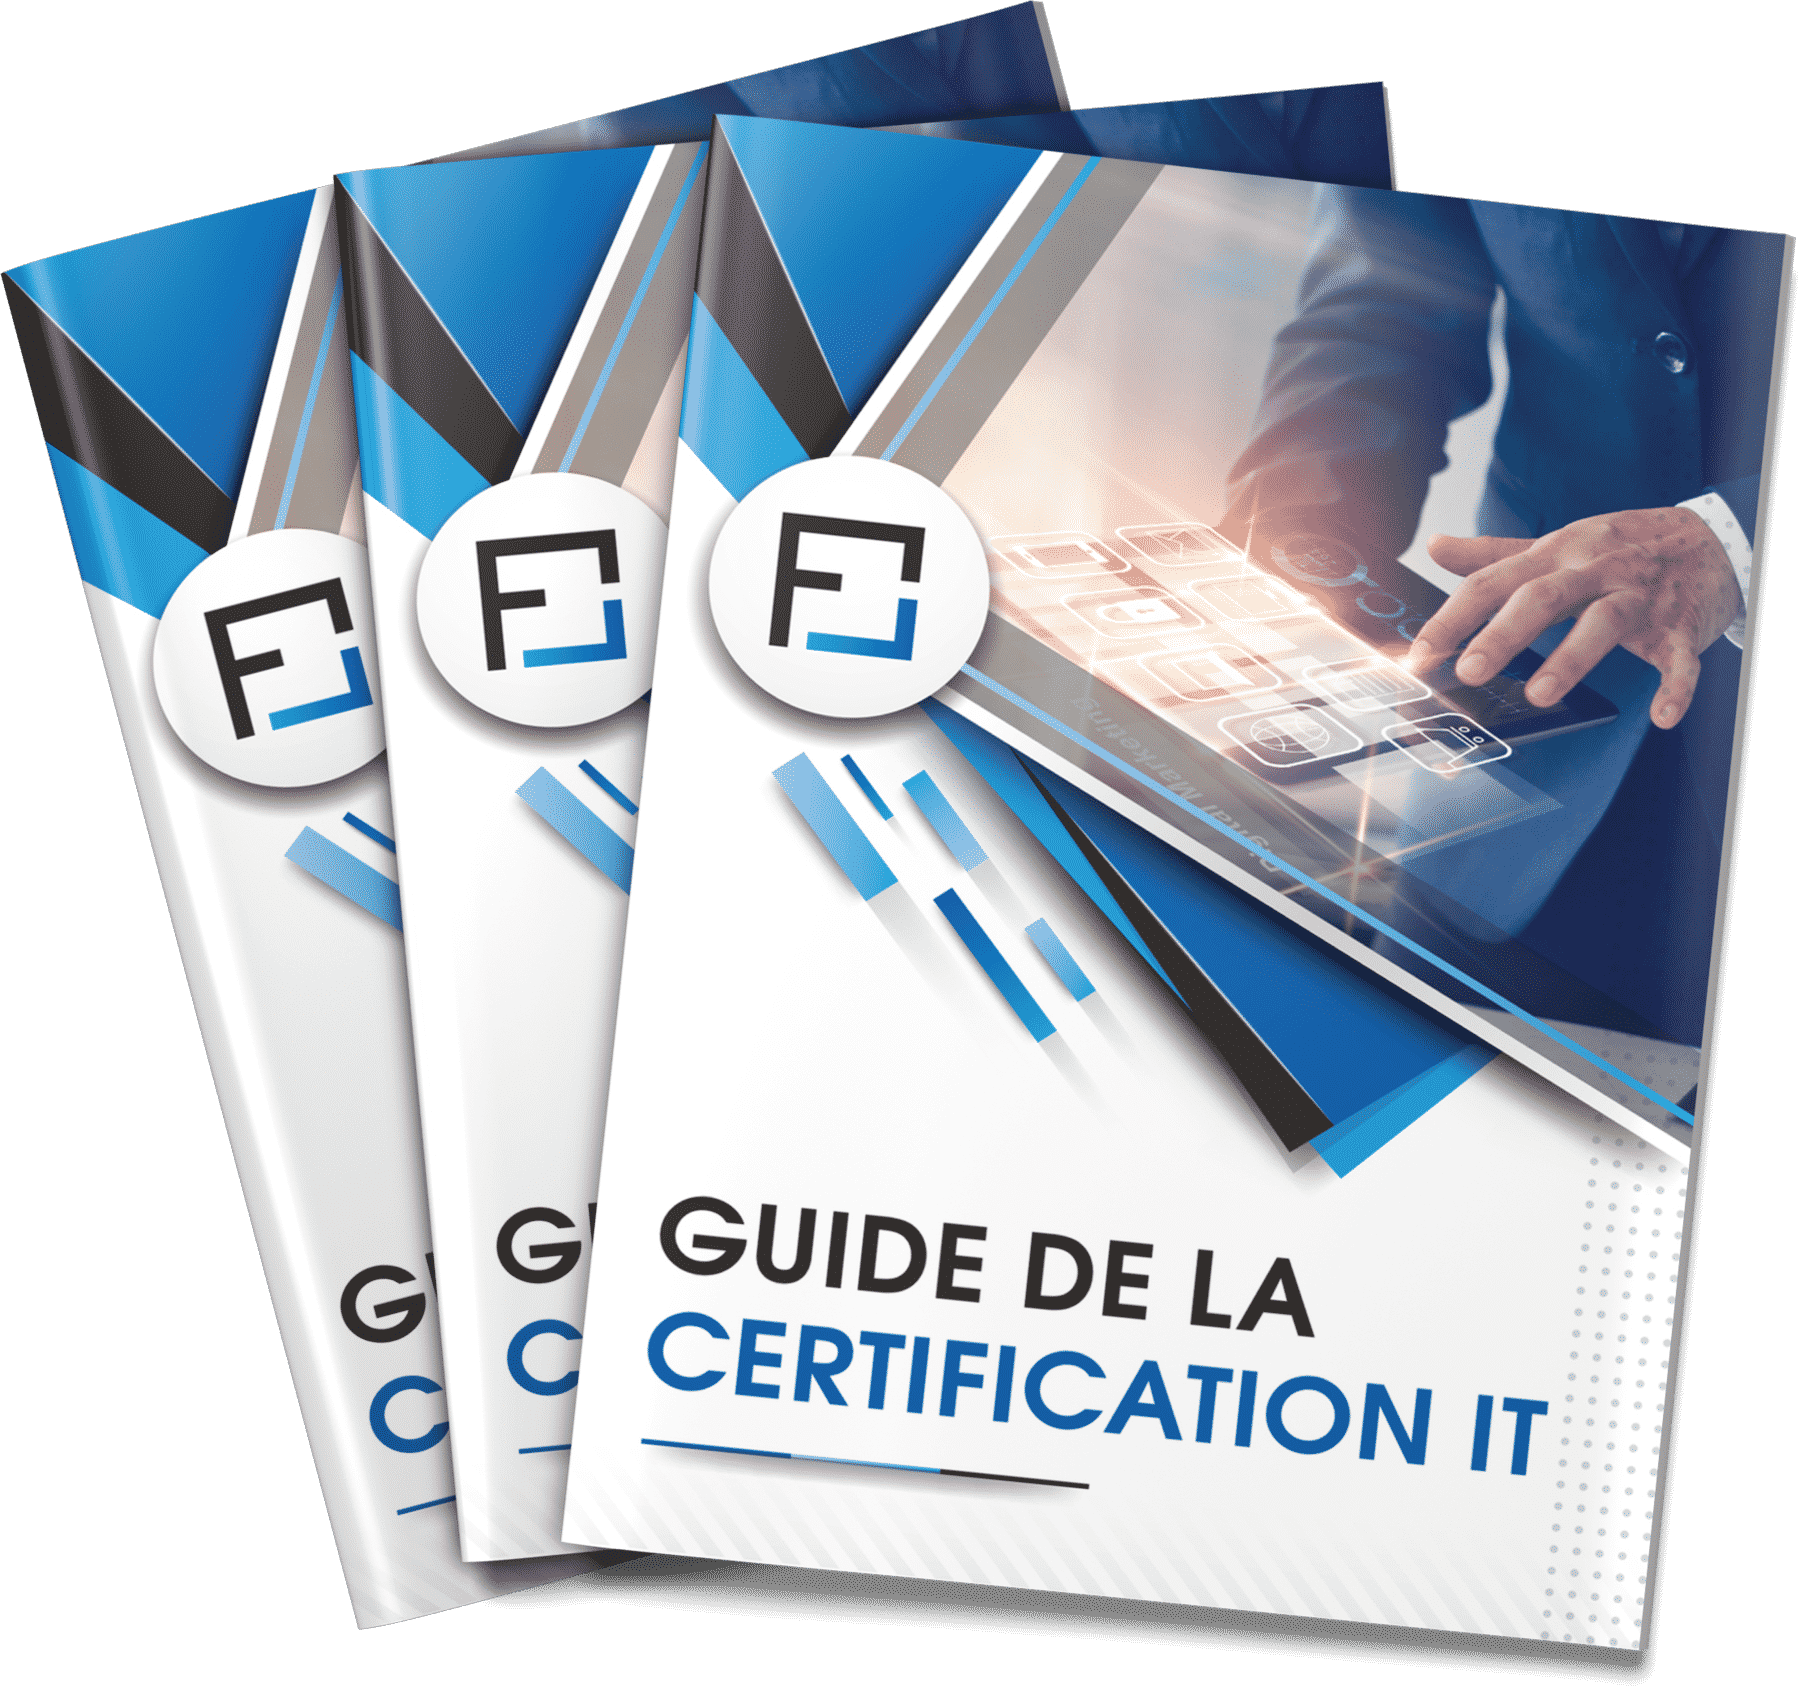 Guide de la Certification IT_Success